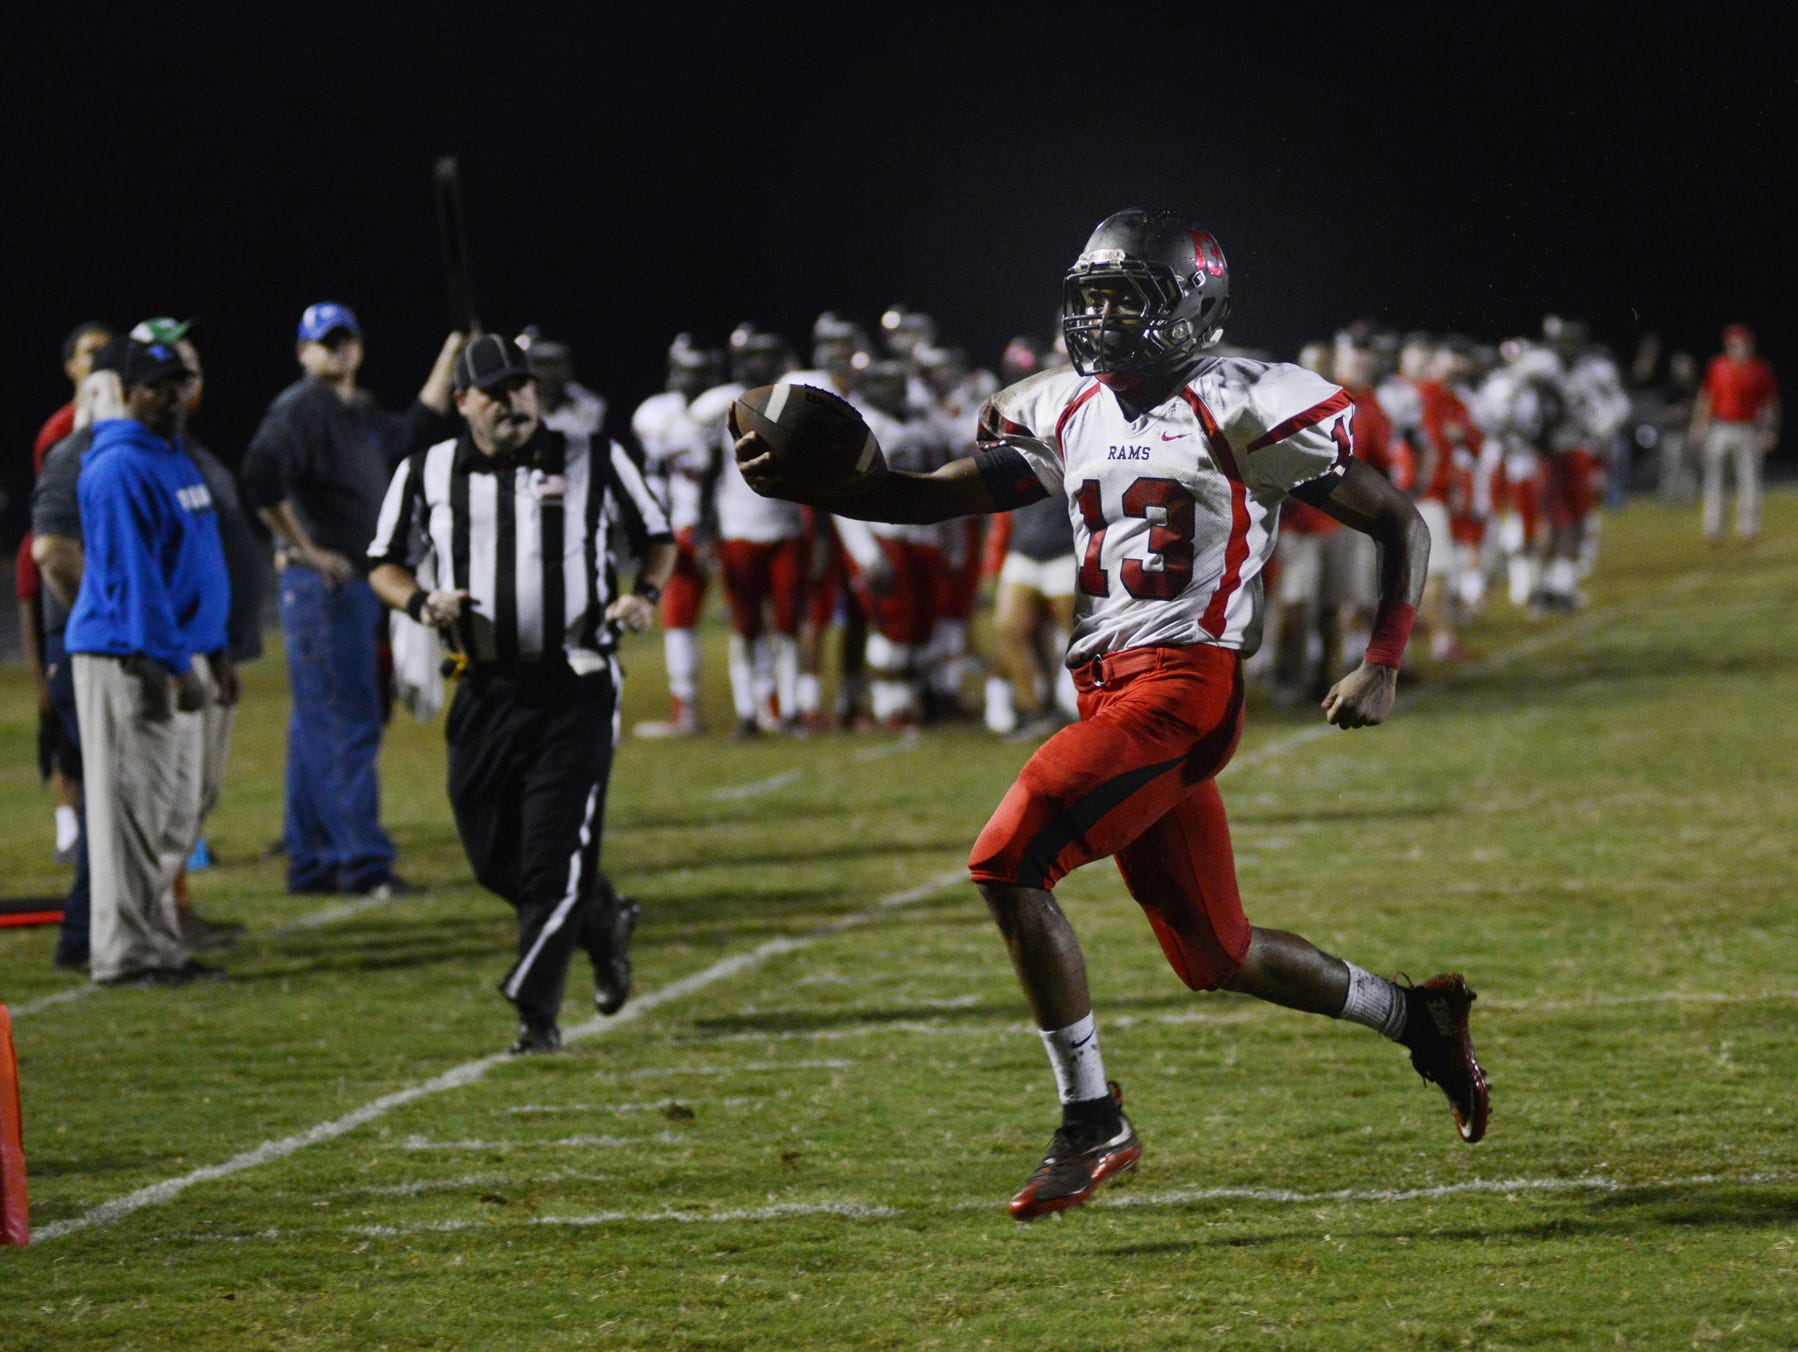 Hillcrest High's Brandon Peppers (13) scores a touchdown at Whitt Memorial Field against Woodmont High School on Friday.